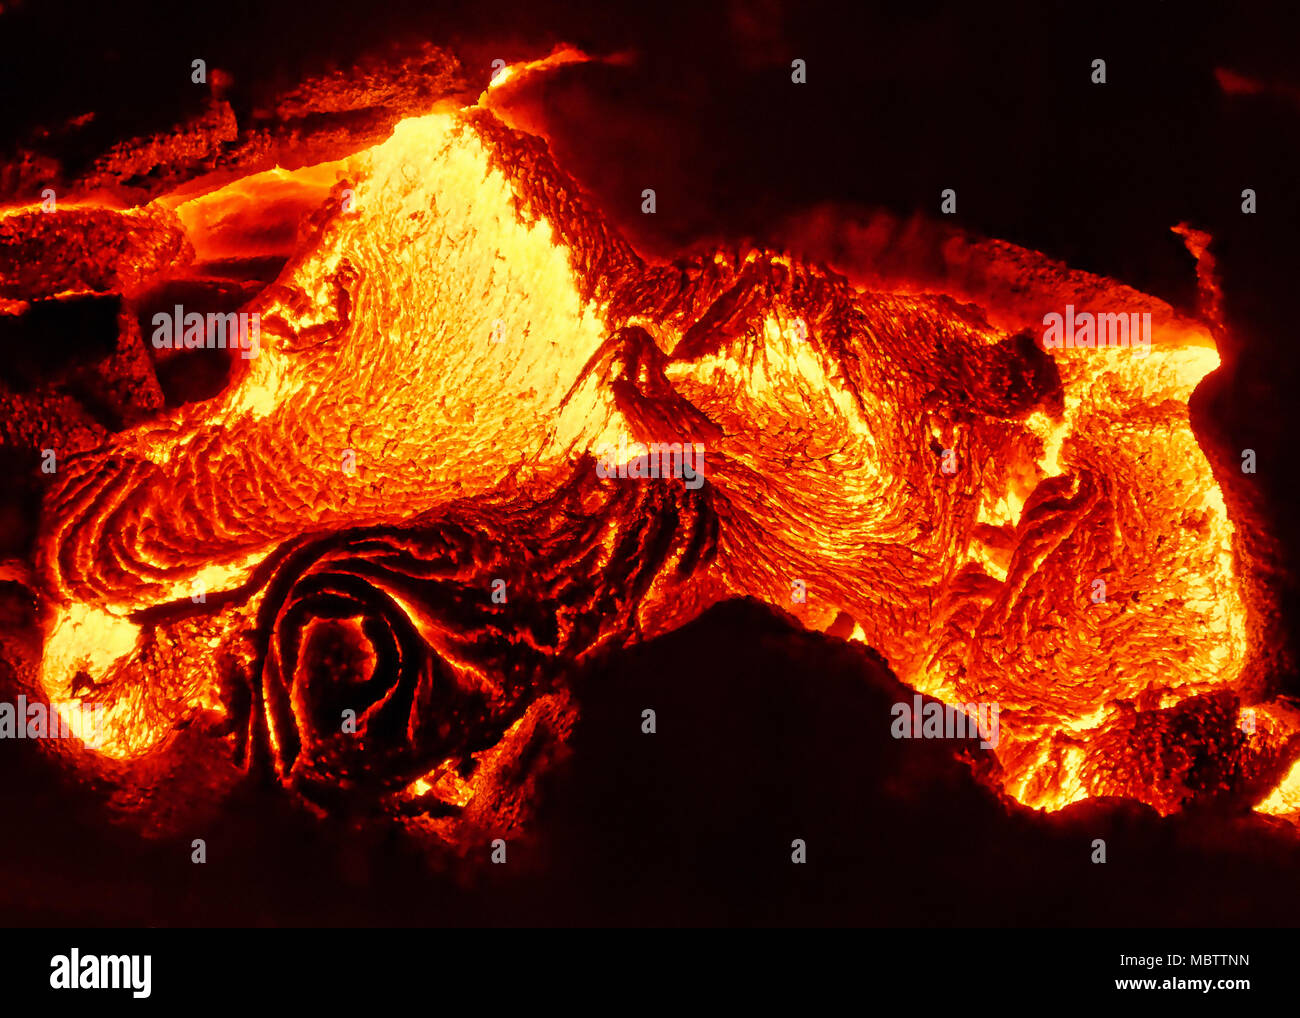 Scenic view of a part of a lava flow in the dark, the hot lava shows up in yellow and red shades - Location: Hawaii, Big Island, volcano 'Kilauea' - Stock Image